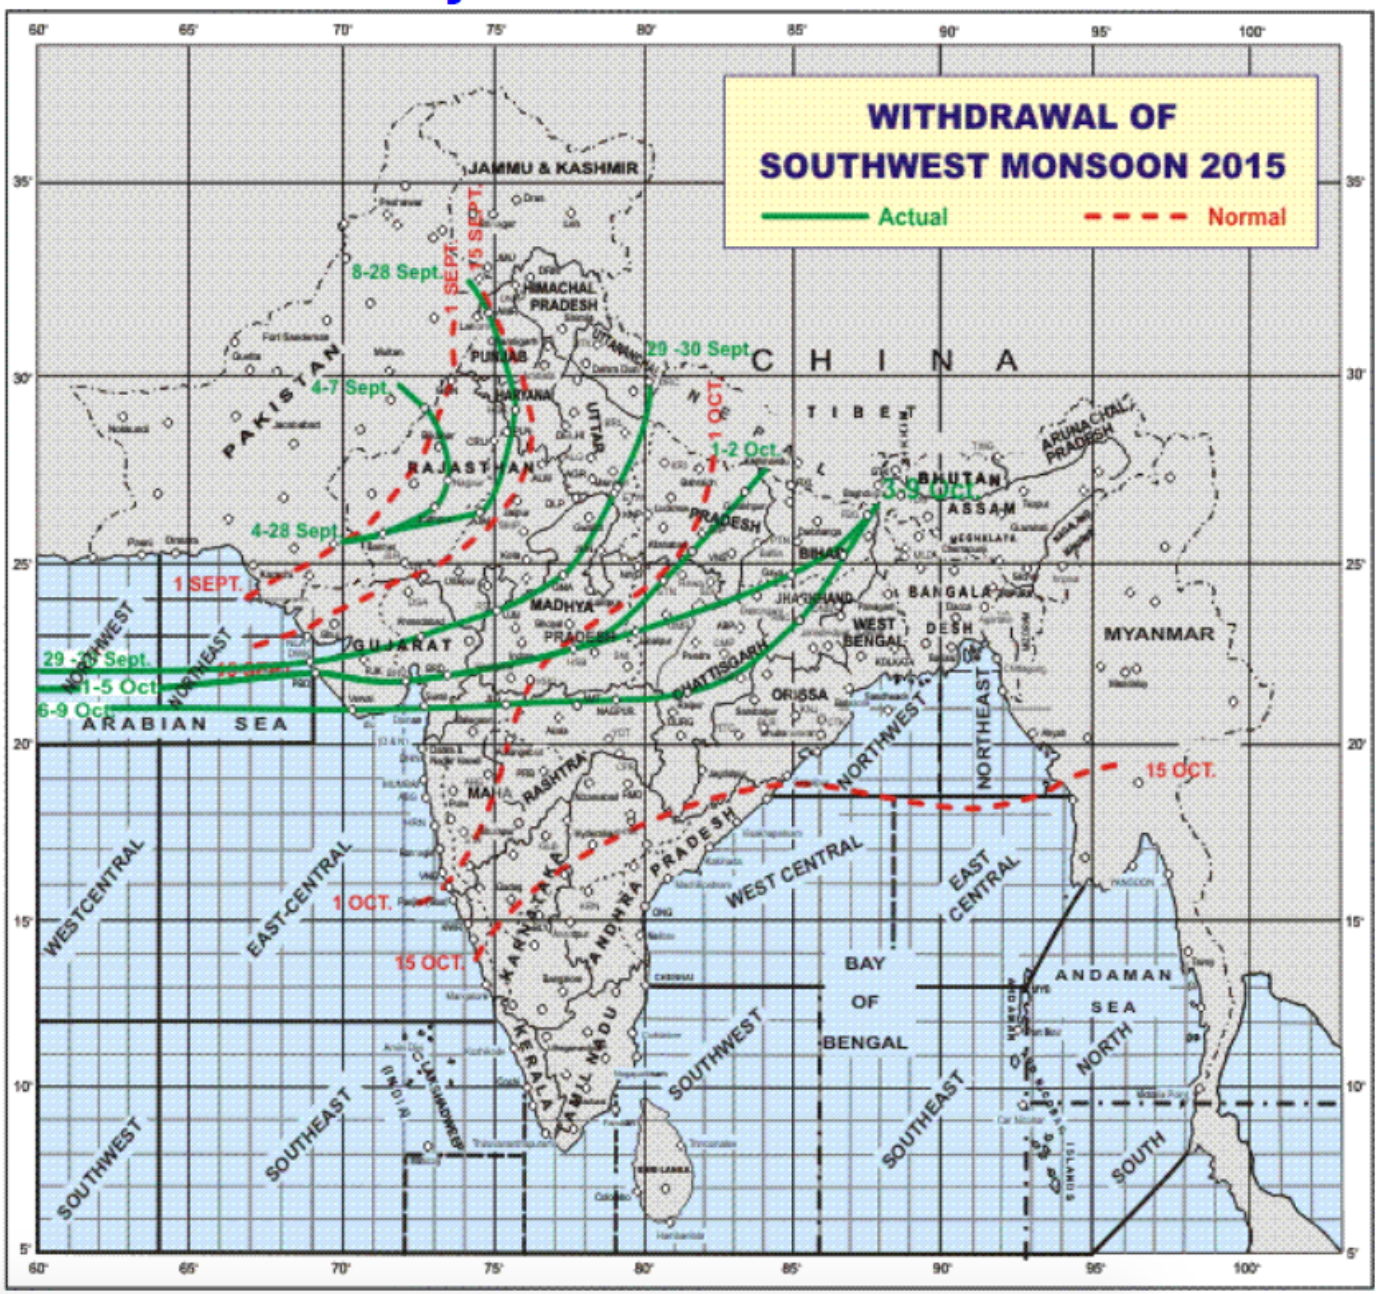 The image shows the withdrawal of the south-West monsoon from the Indian sub-continent 